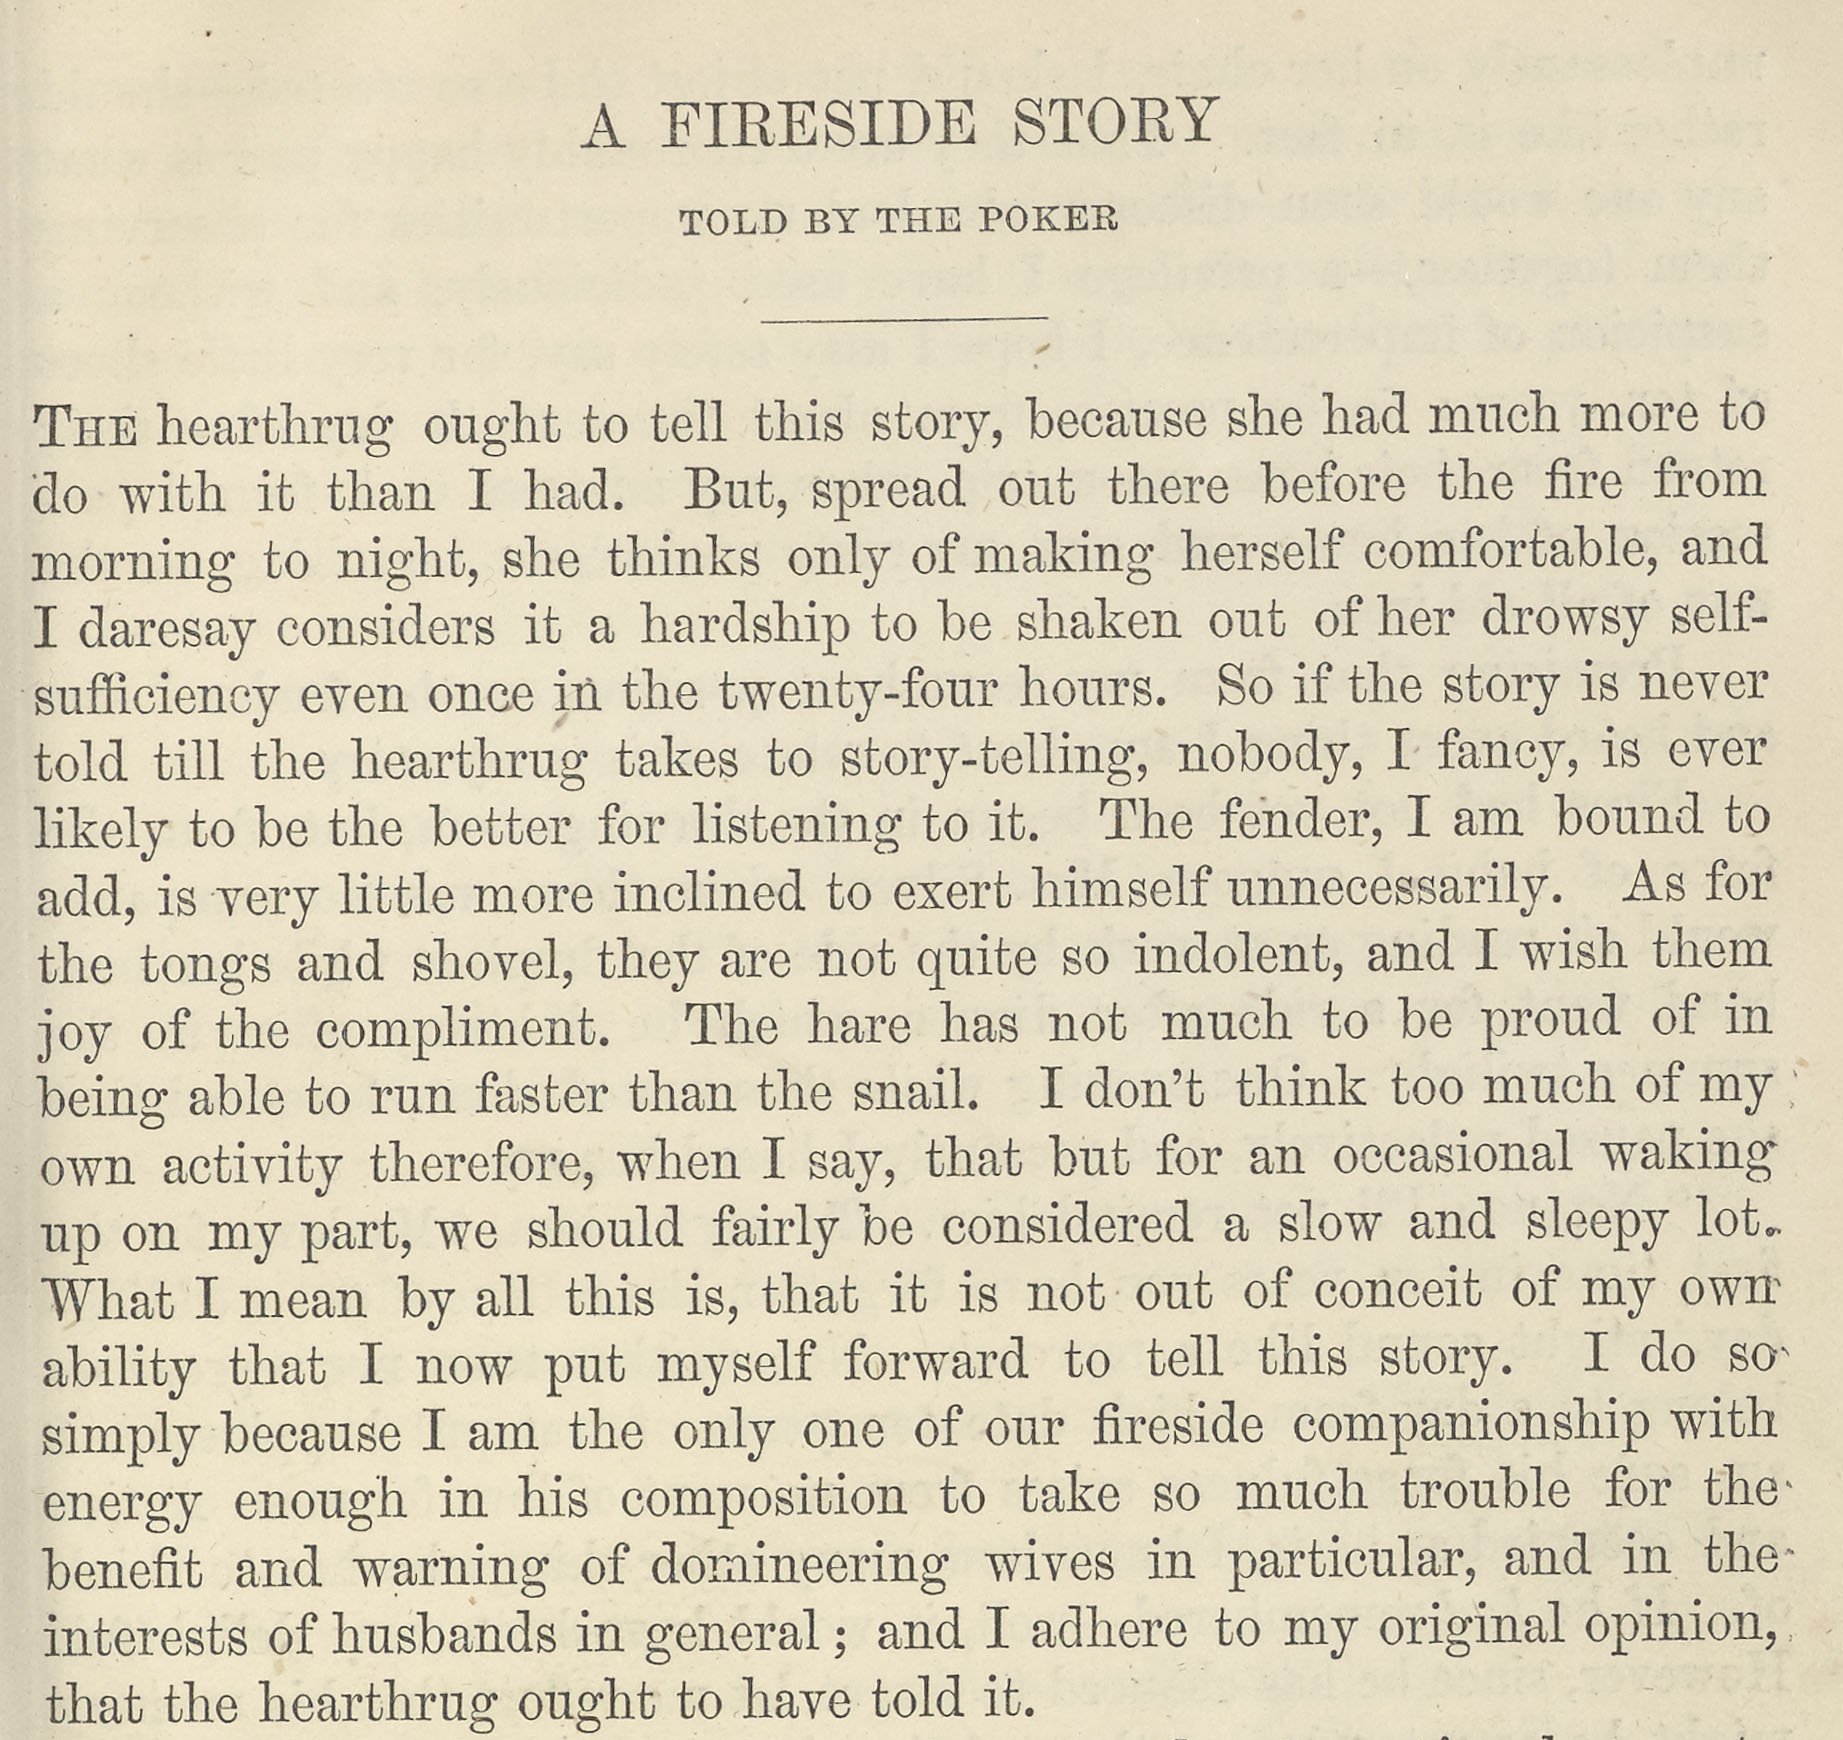 A sample page from A Fireside Story, Told by the Poker by Anonymous